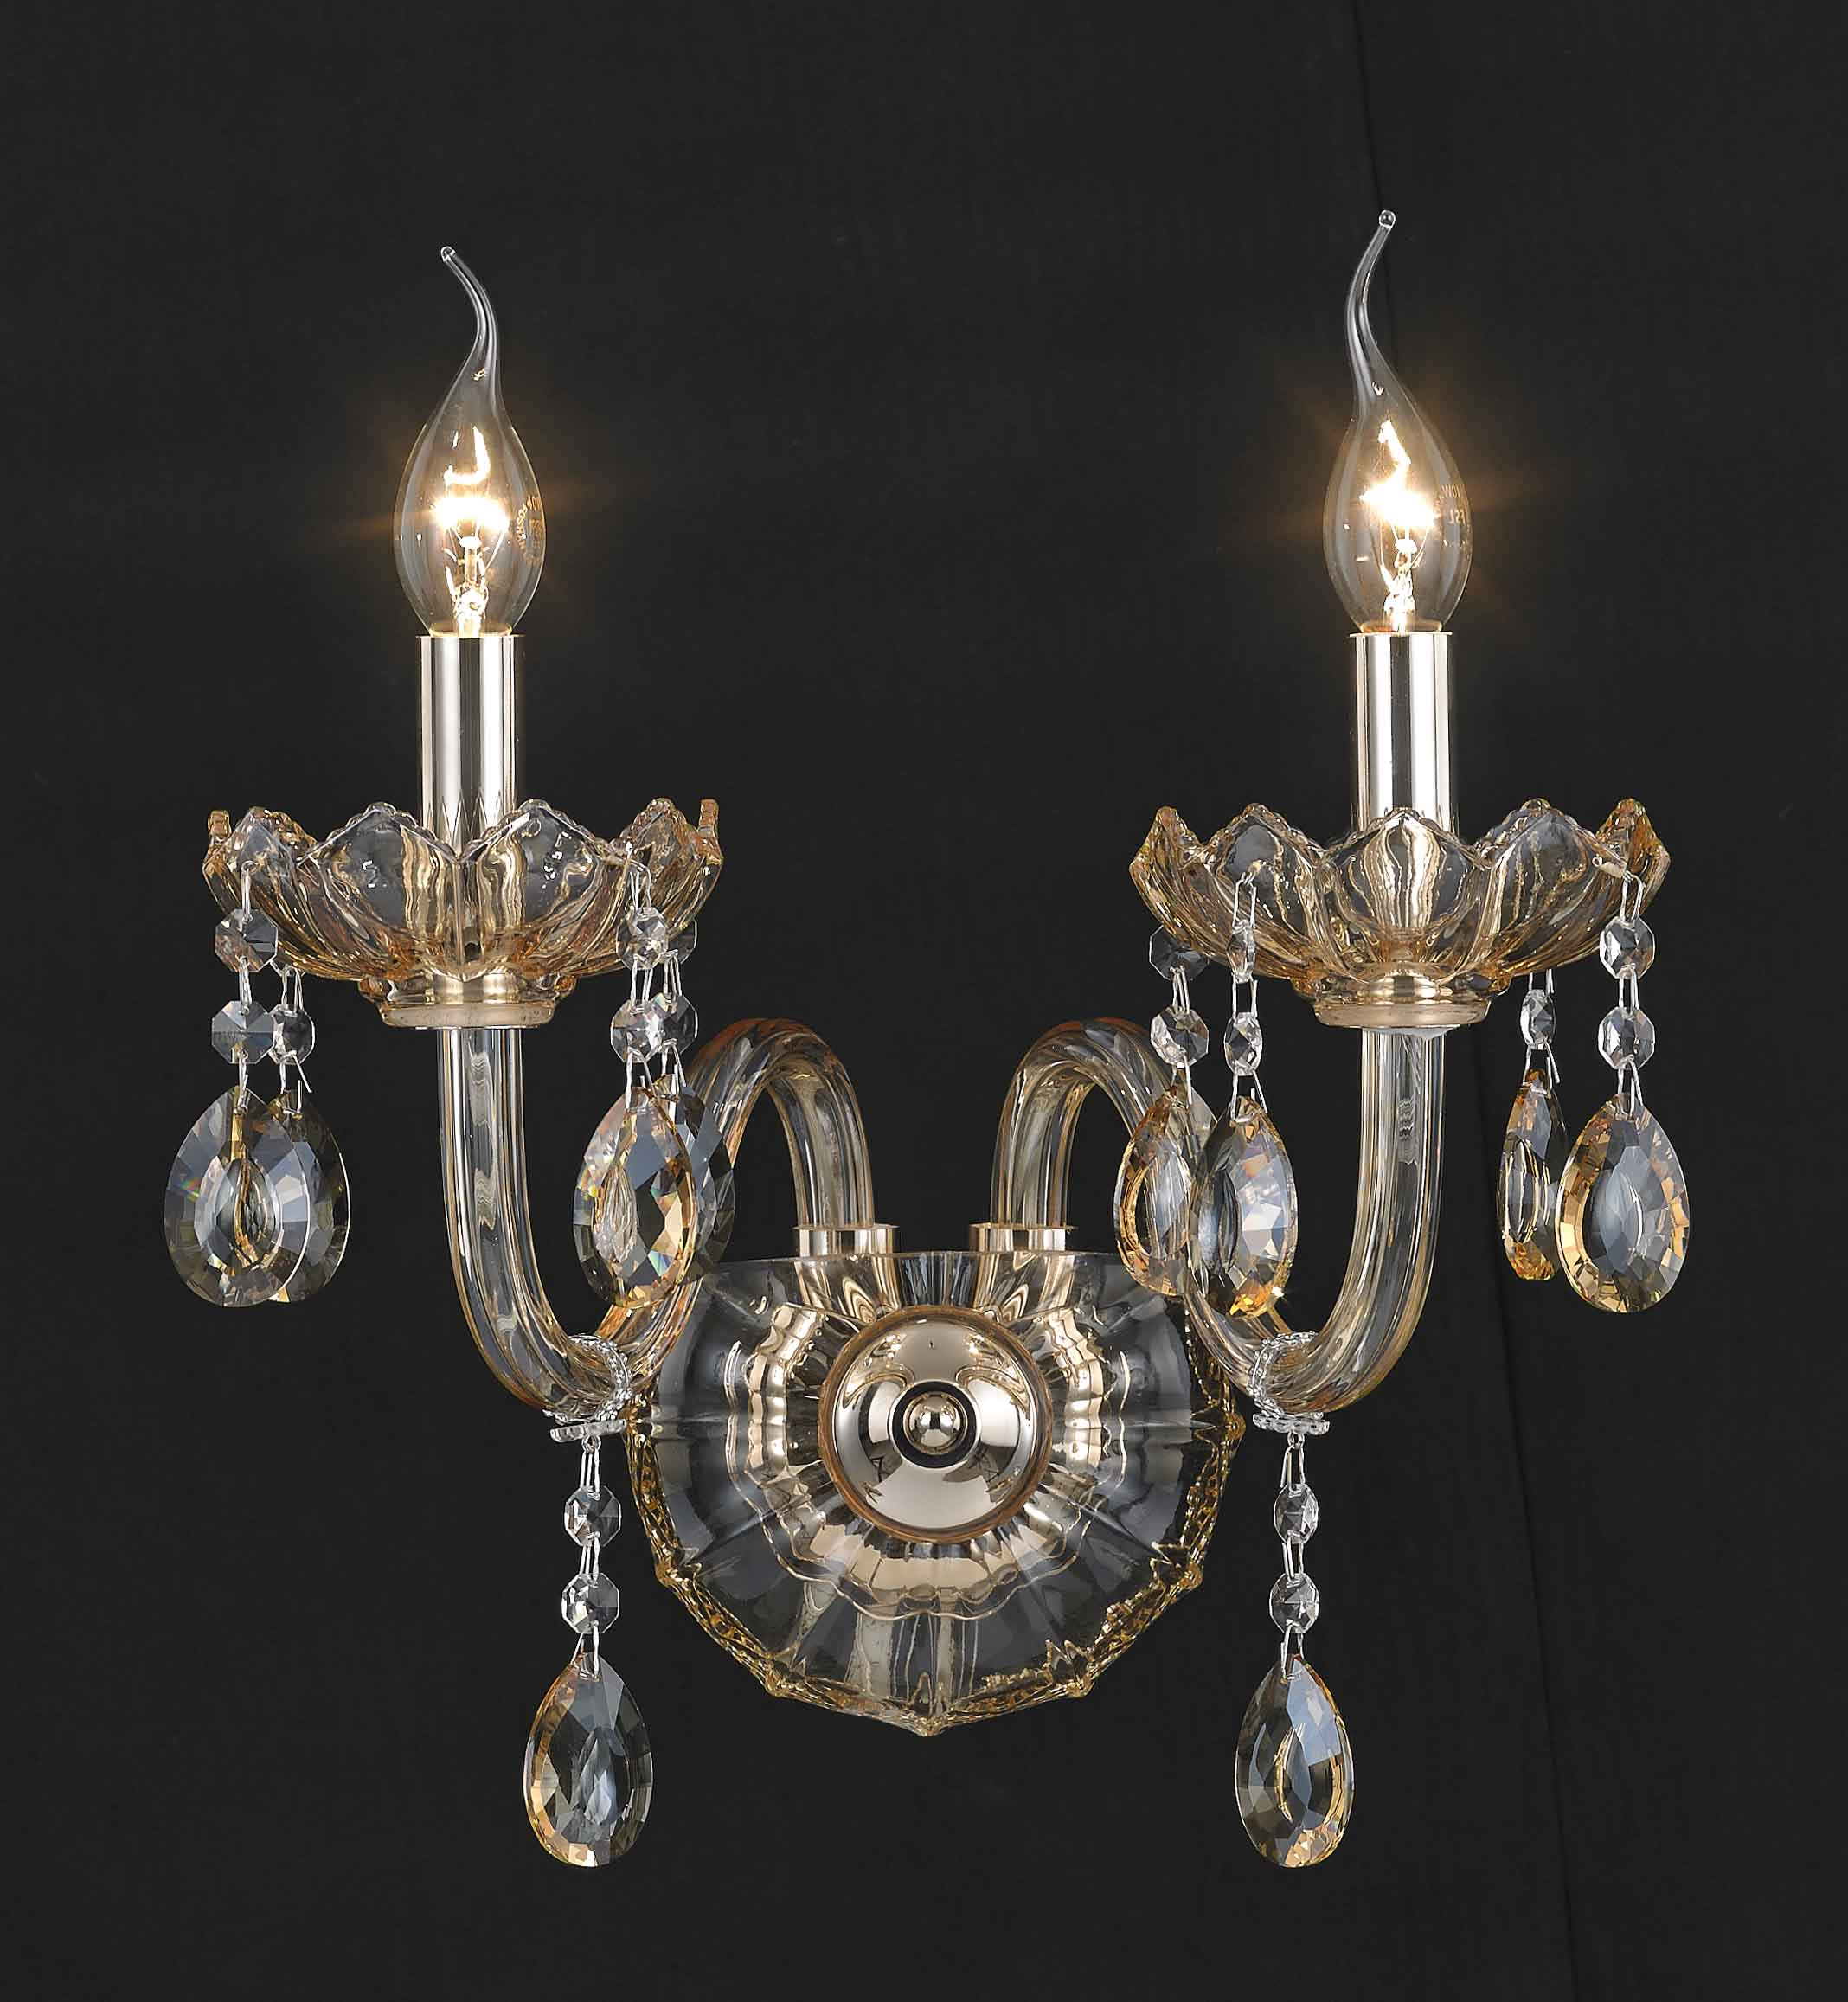 Wall lamp Applique in fabric Finish Brass Classic D2005-1